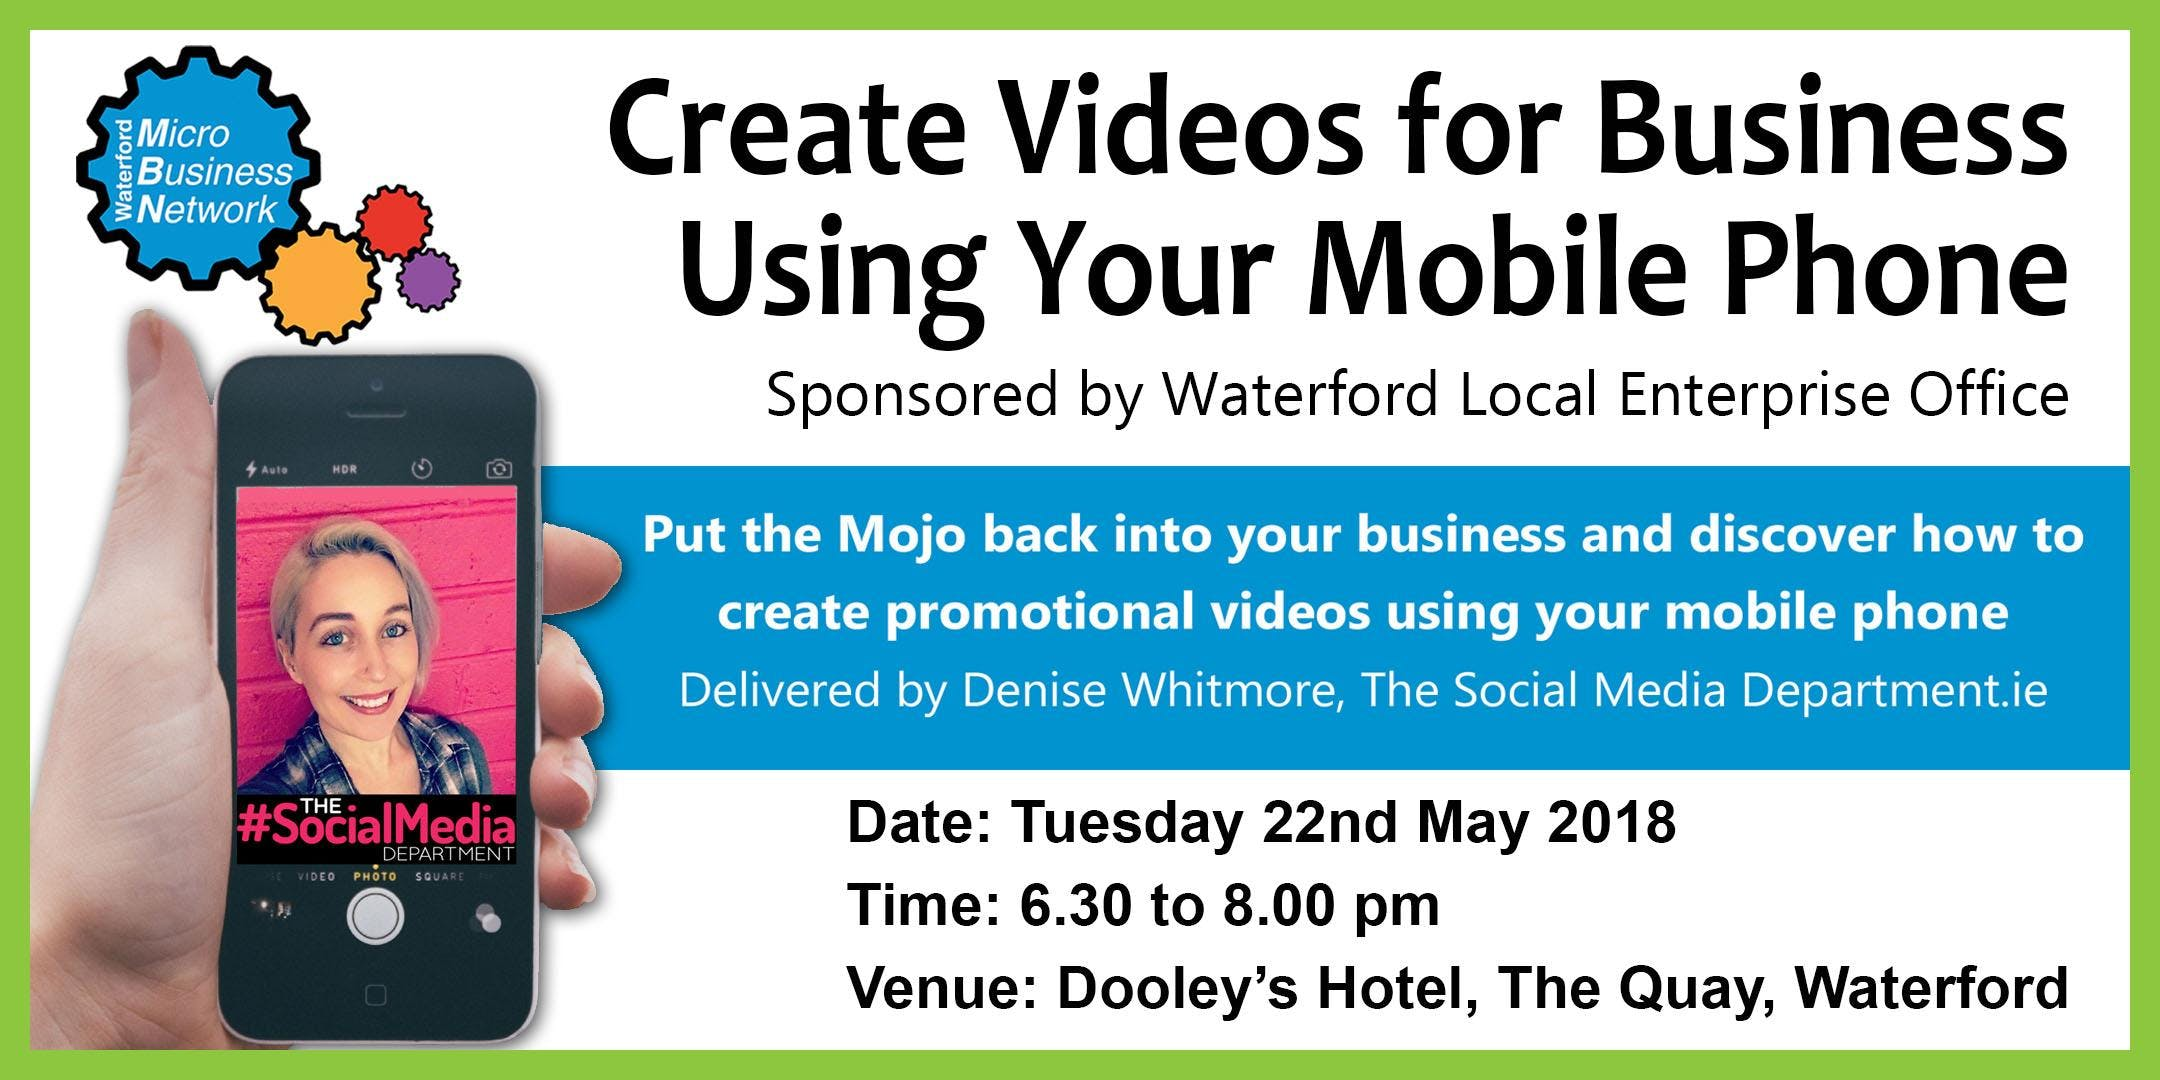 Create Videos for Business Using Your Mobile Phone